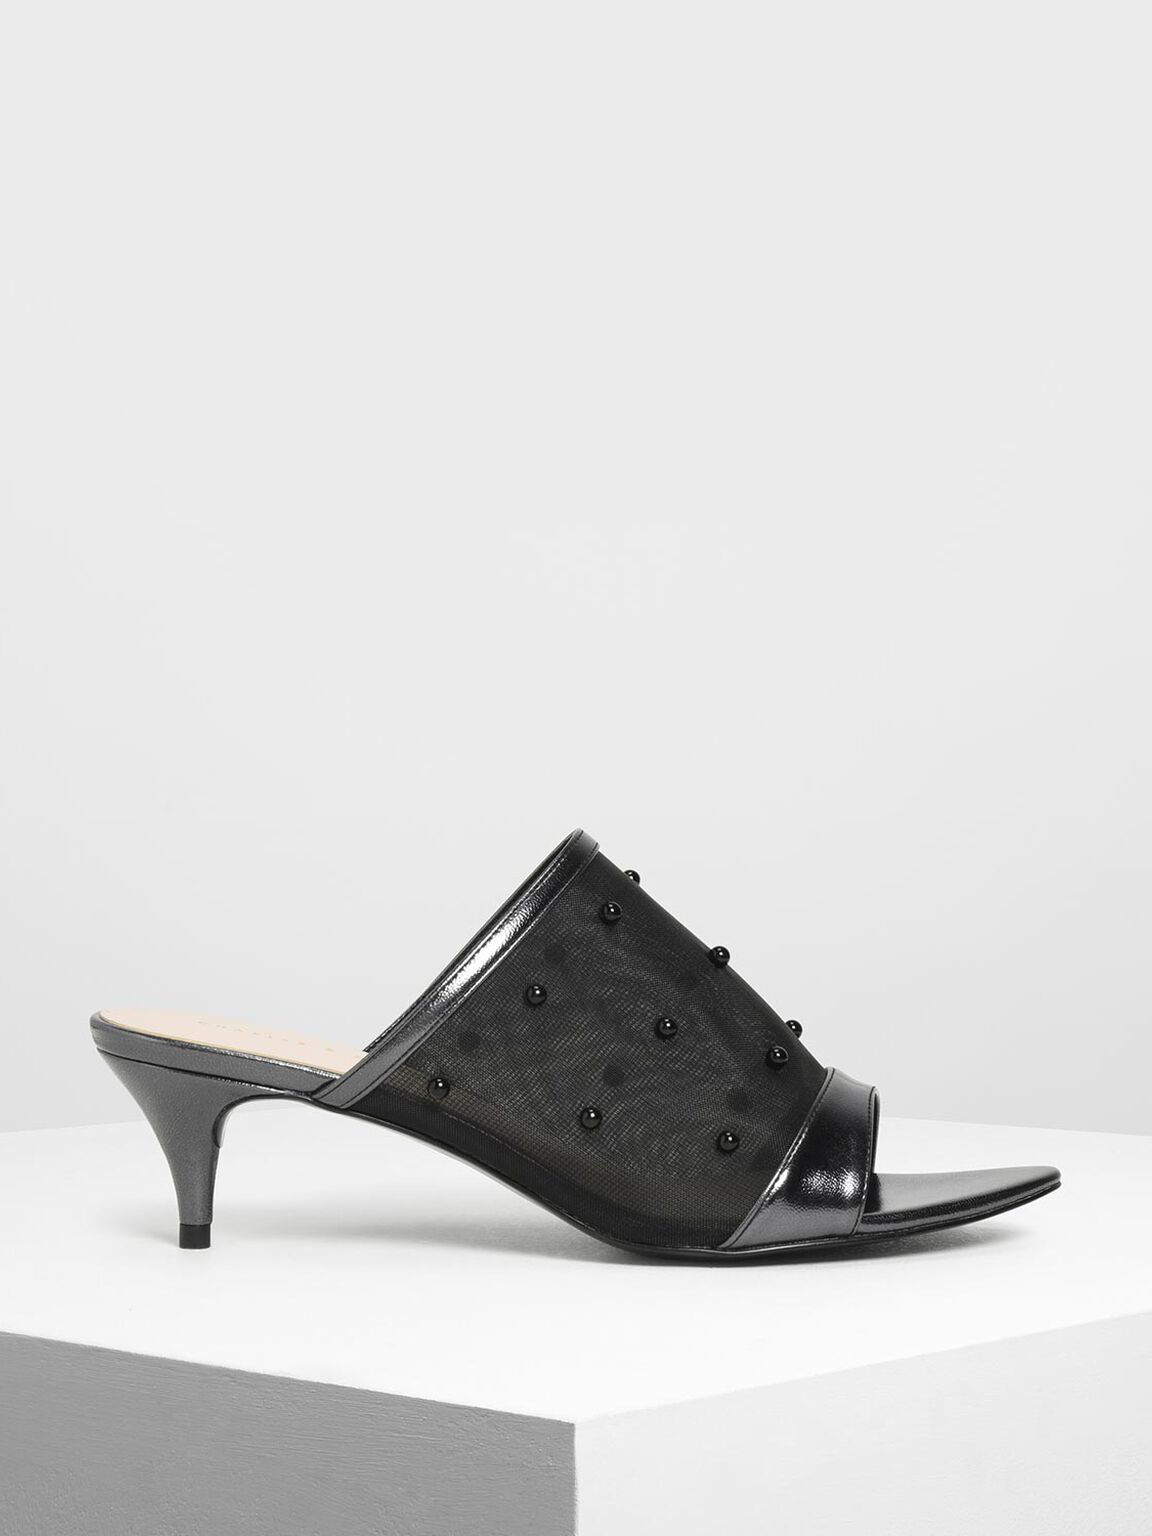 Embellished Mesh Kitten Heel Slide Sandals, Black, hi-res